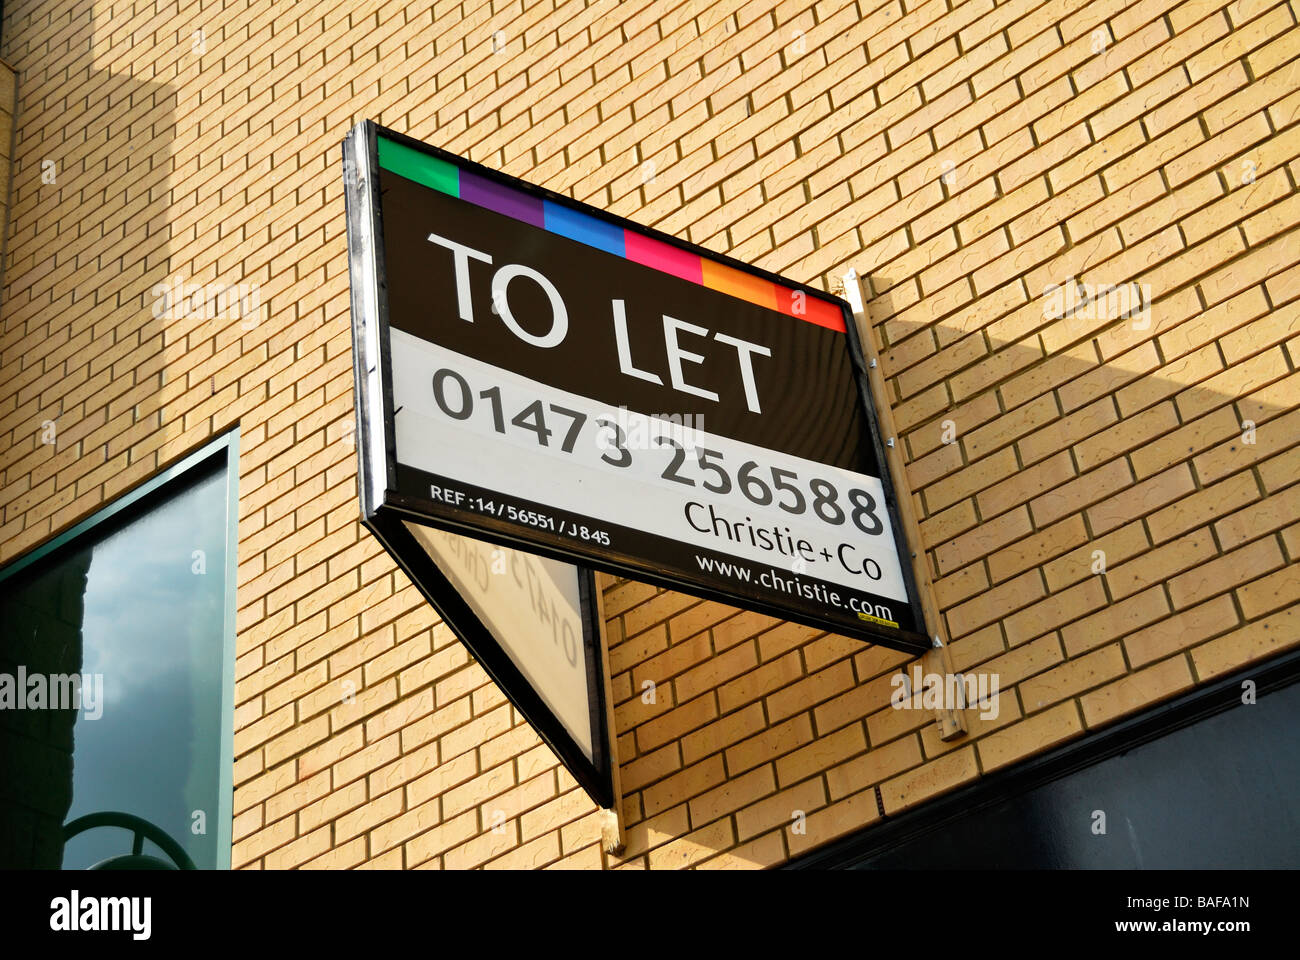 To let sign - Stock Image